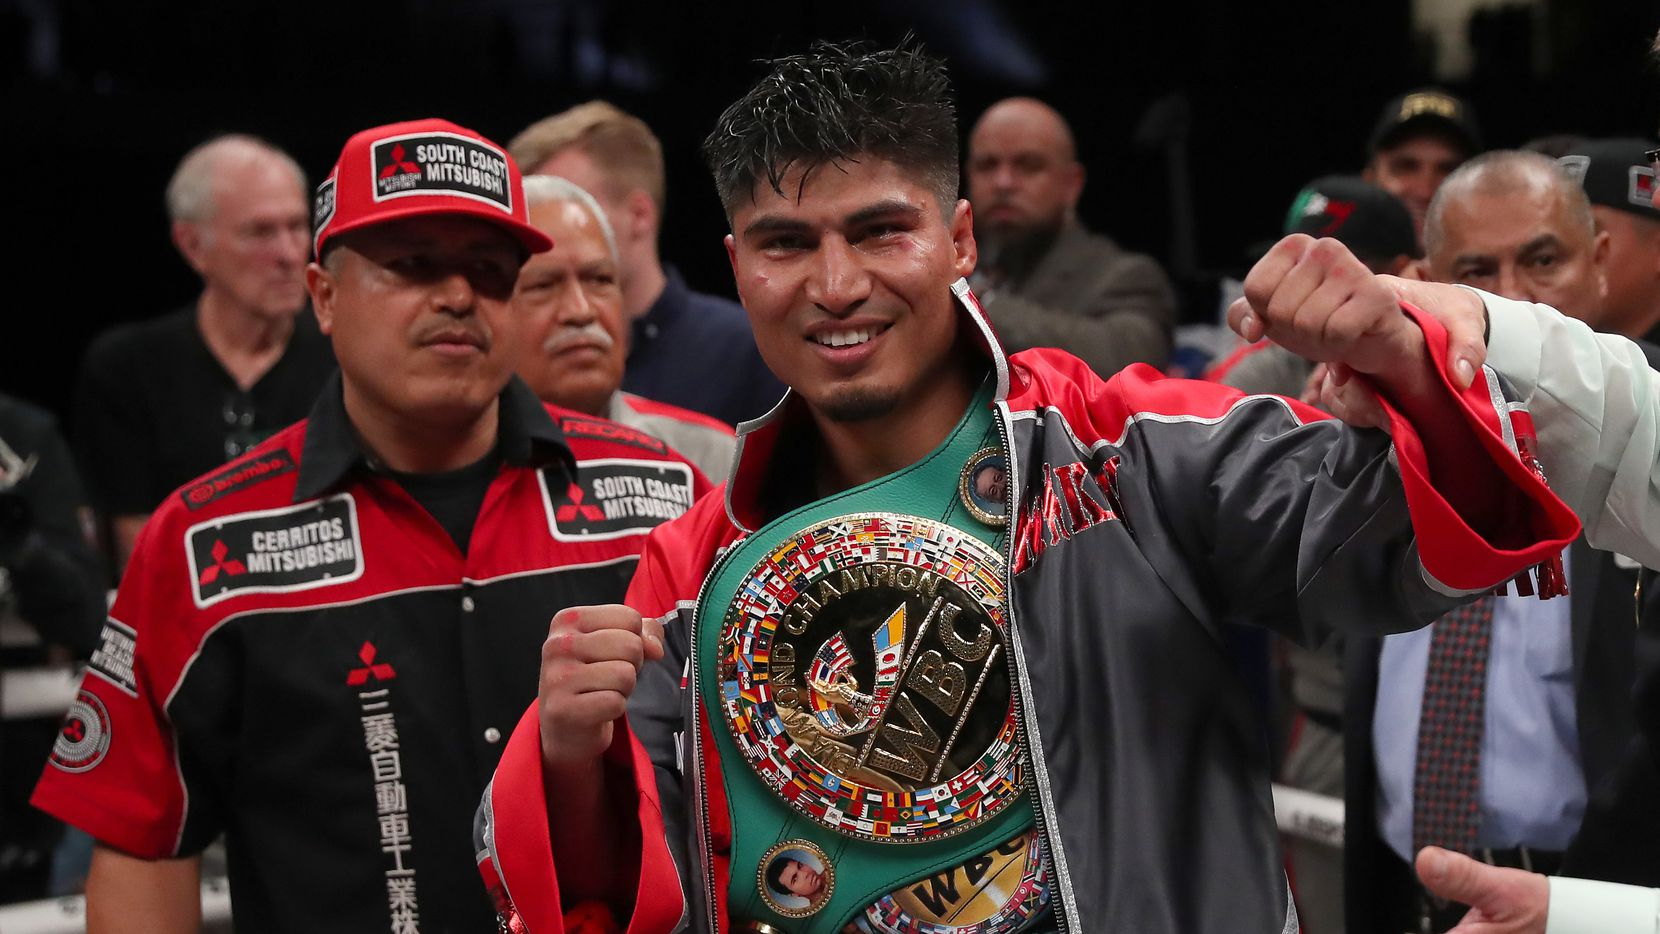 FRISCO, TEXAS - FEBRUARY 29: Mikey Garcia celebrates after defeating Jessie Vargas in a unanimous decision in a WBC Welterweight Diamond Championship bout at The Ford Center at The Star on February 29, 2020 in Frisco, Texas.